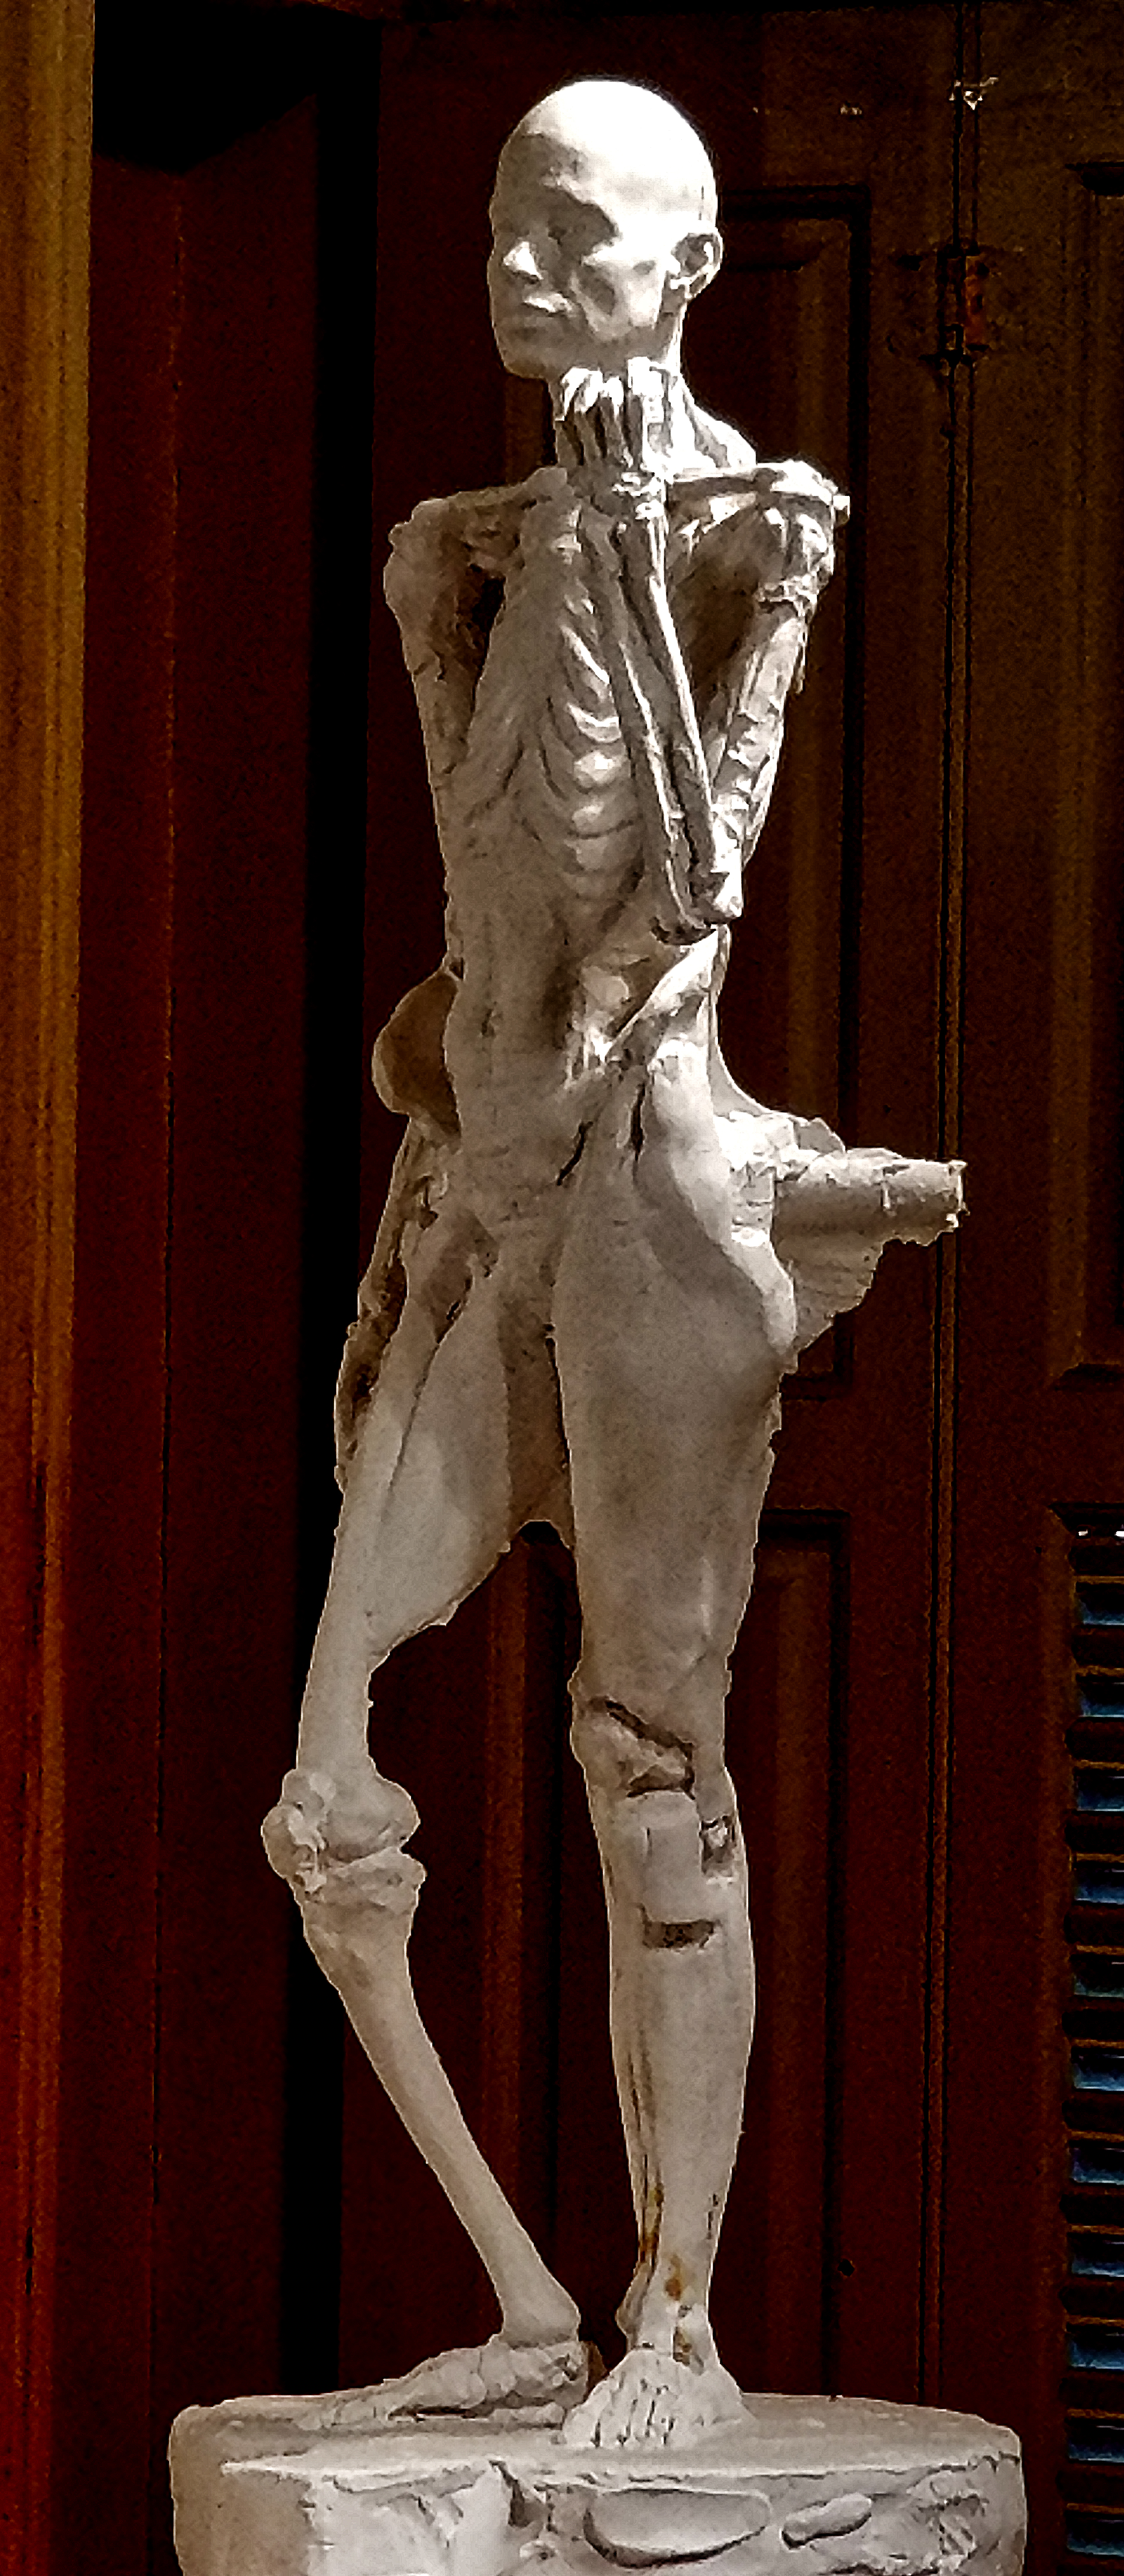 Anatomy Figure Class Demonstration Sculpture, Plaster - unchased - raw, Ana Russian Front Side View